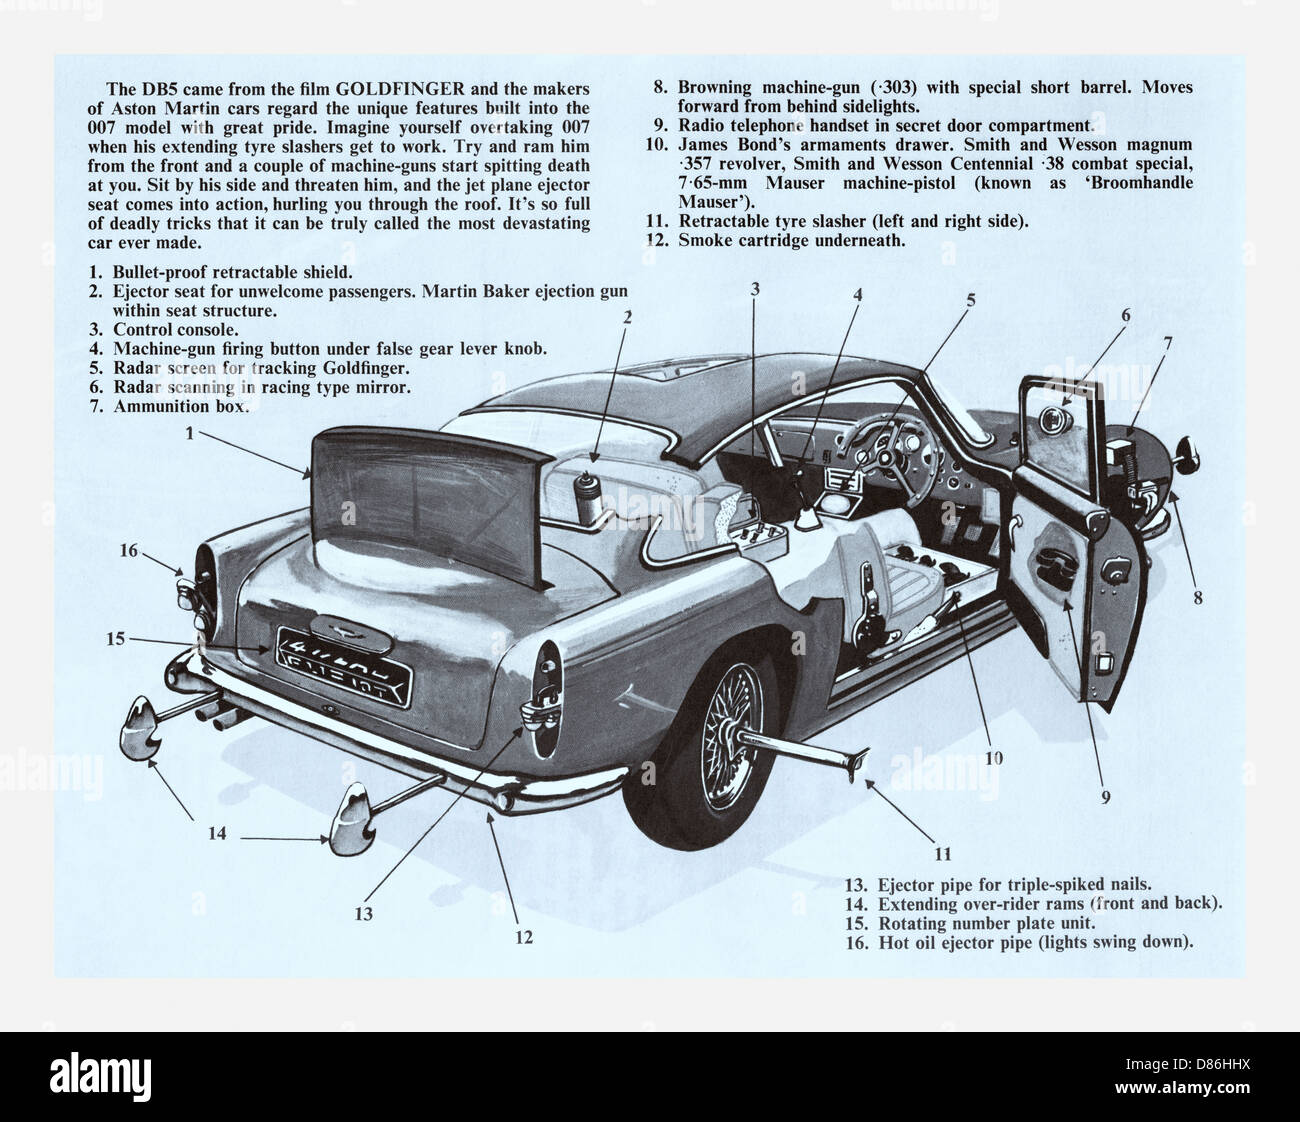 hight resolution of schematic blueprint of the aston martin db5 famous for being the first and most recognised cinematic james bond car